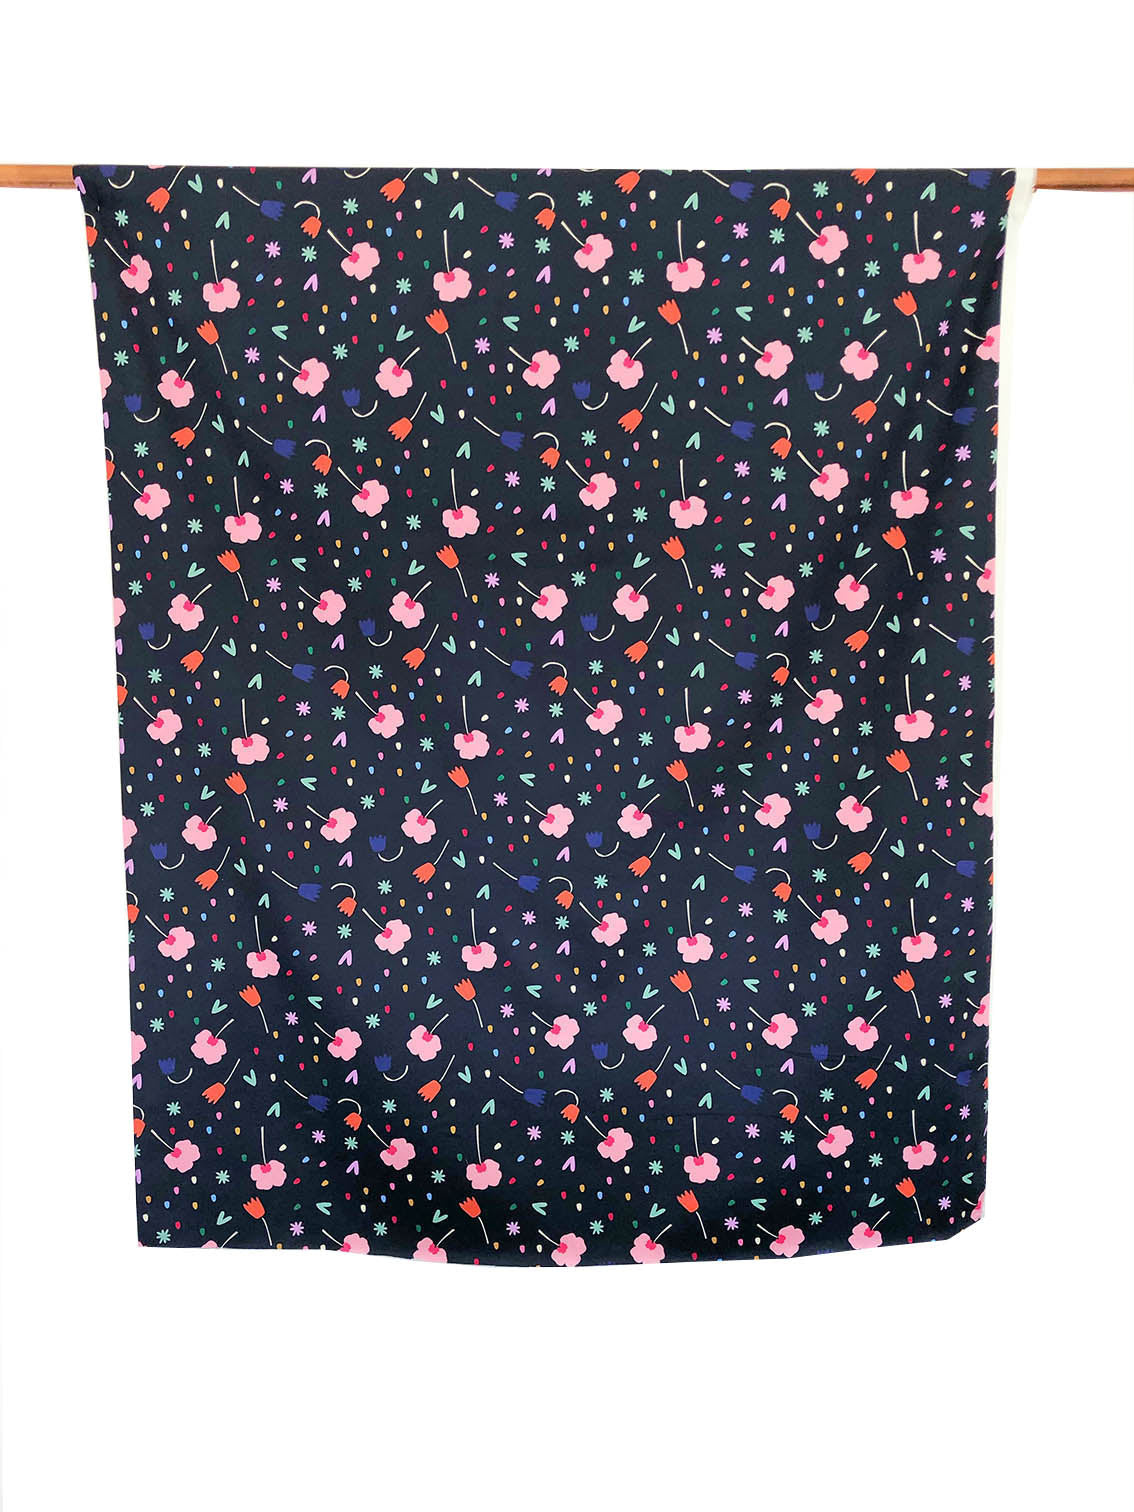 Floral Explosion (Navy) - Cotton Sateen fabric by the half metre